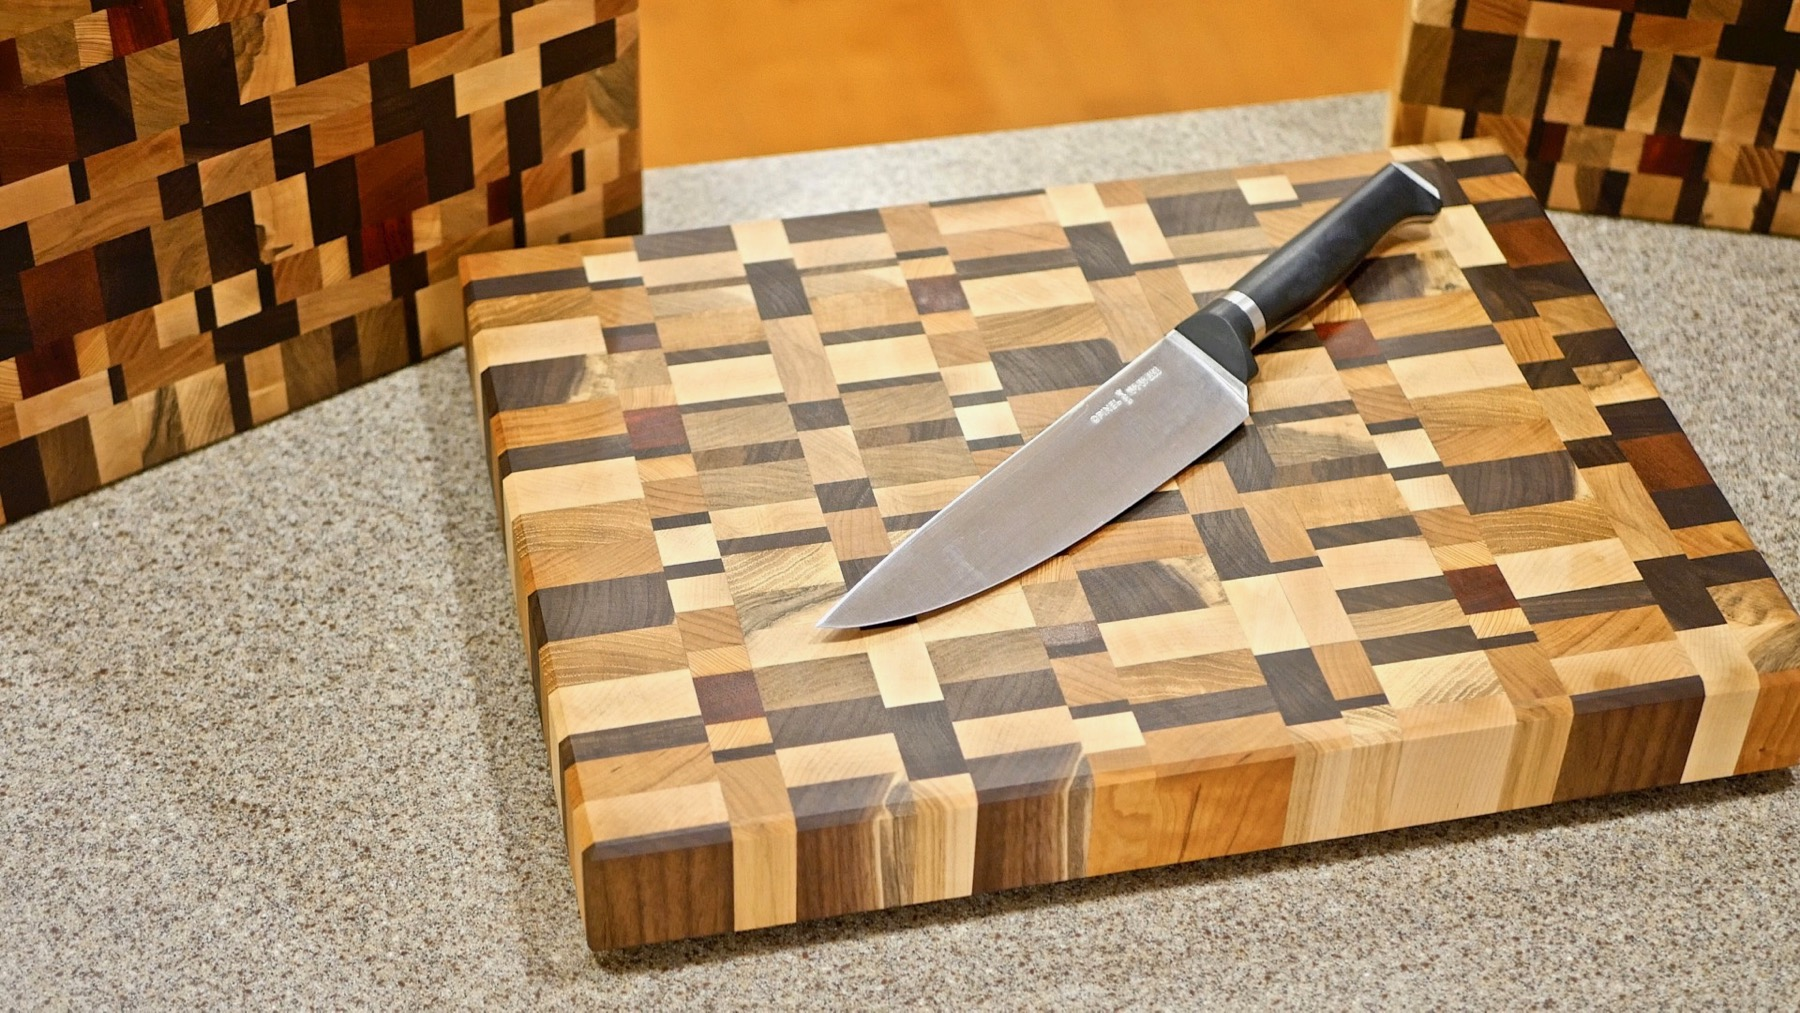 End Grain Cutting Boards From Scrap Wood How To Crafted